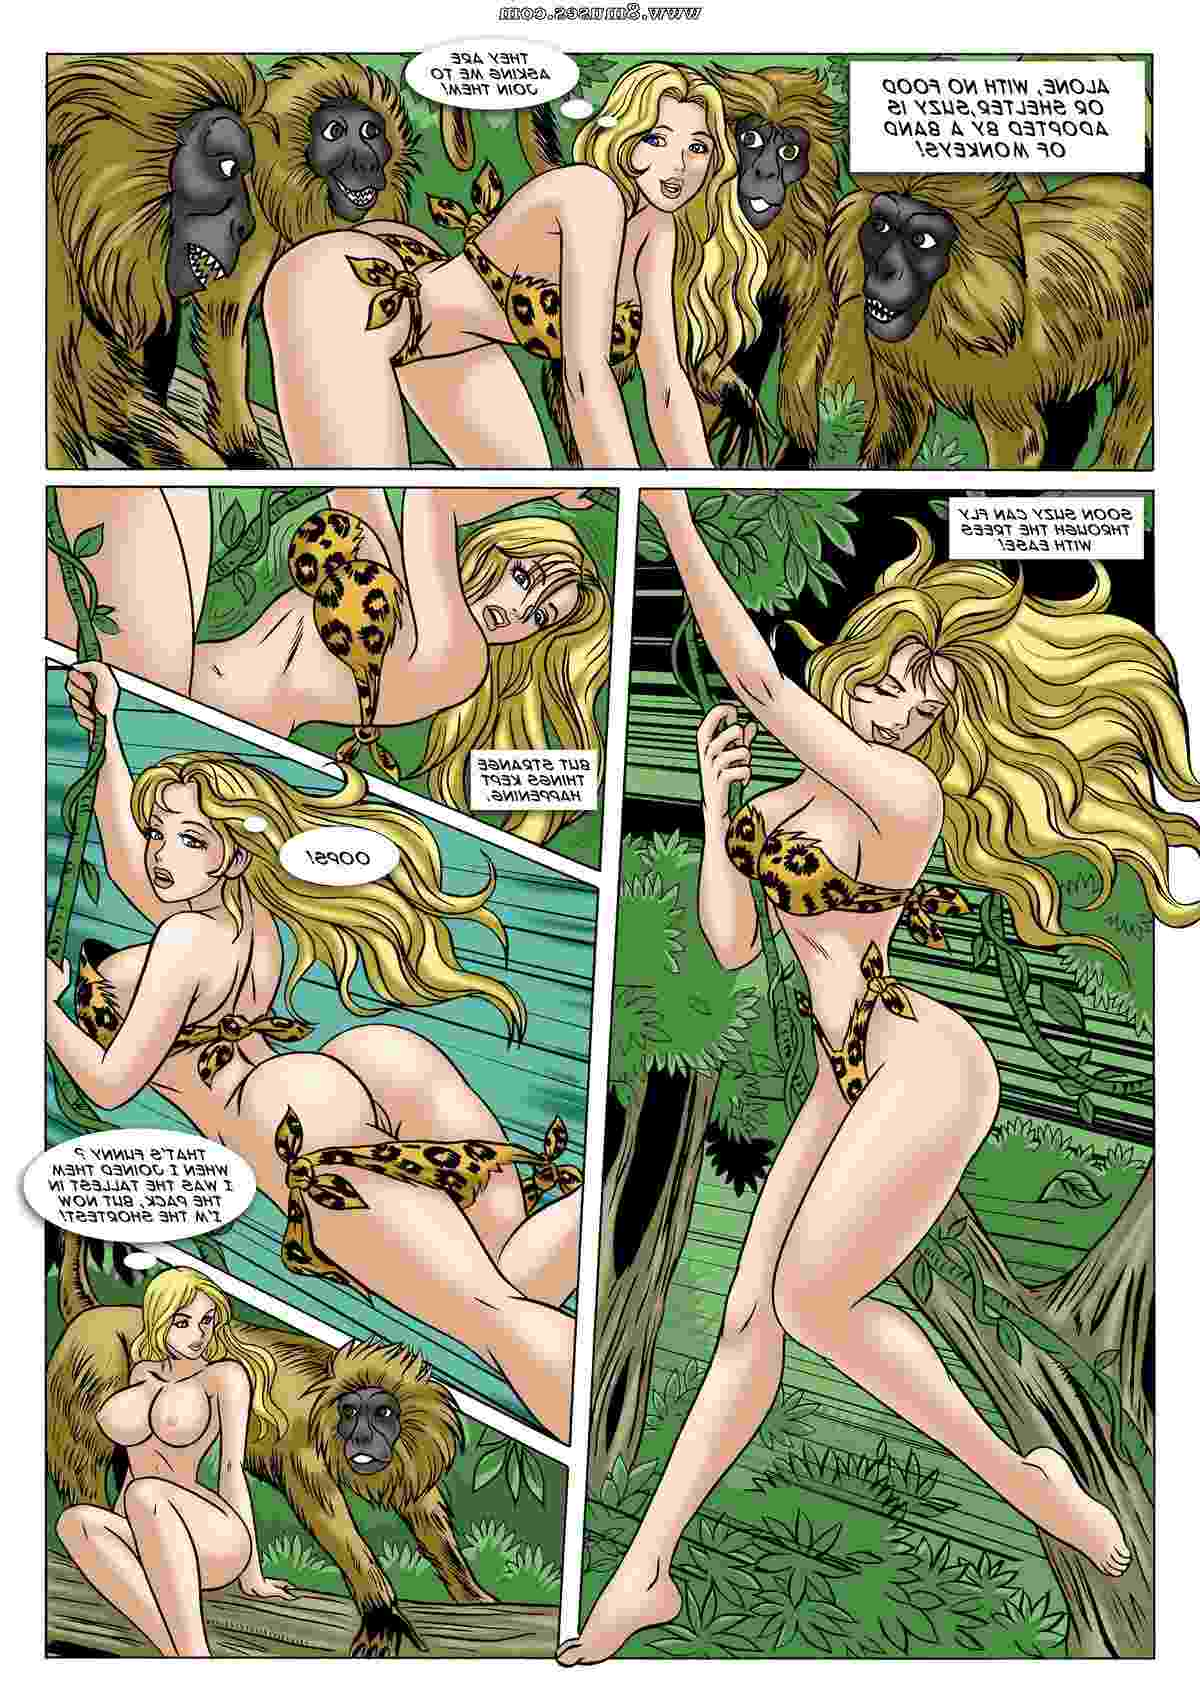 DreamTales-Comics/Pygmy-Queen Pygmy_Queen__8muses_-_Sex_and_Porn_Comics_8.jpg